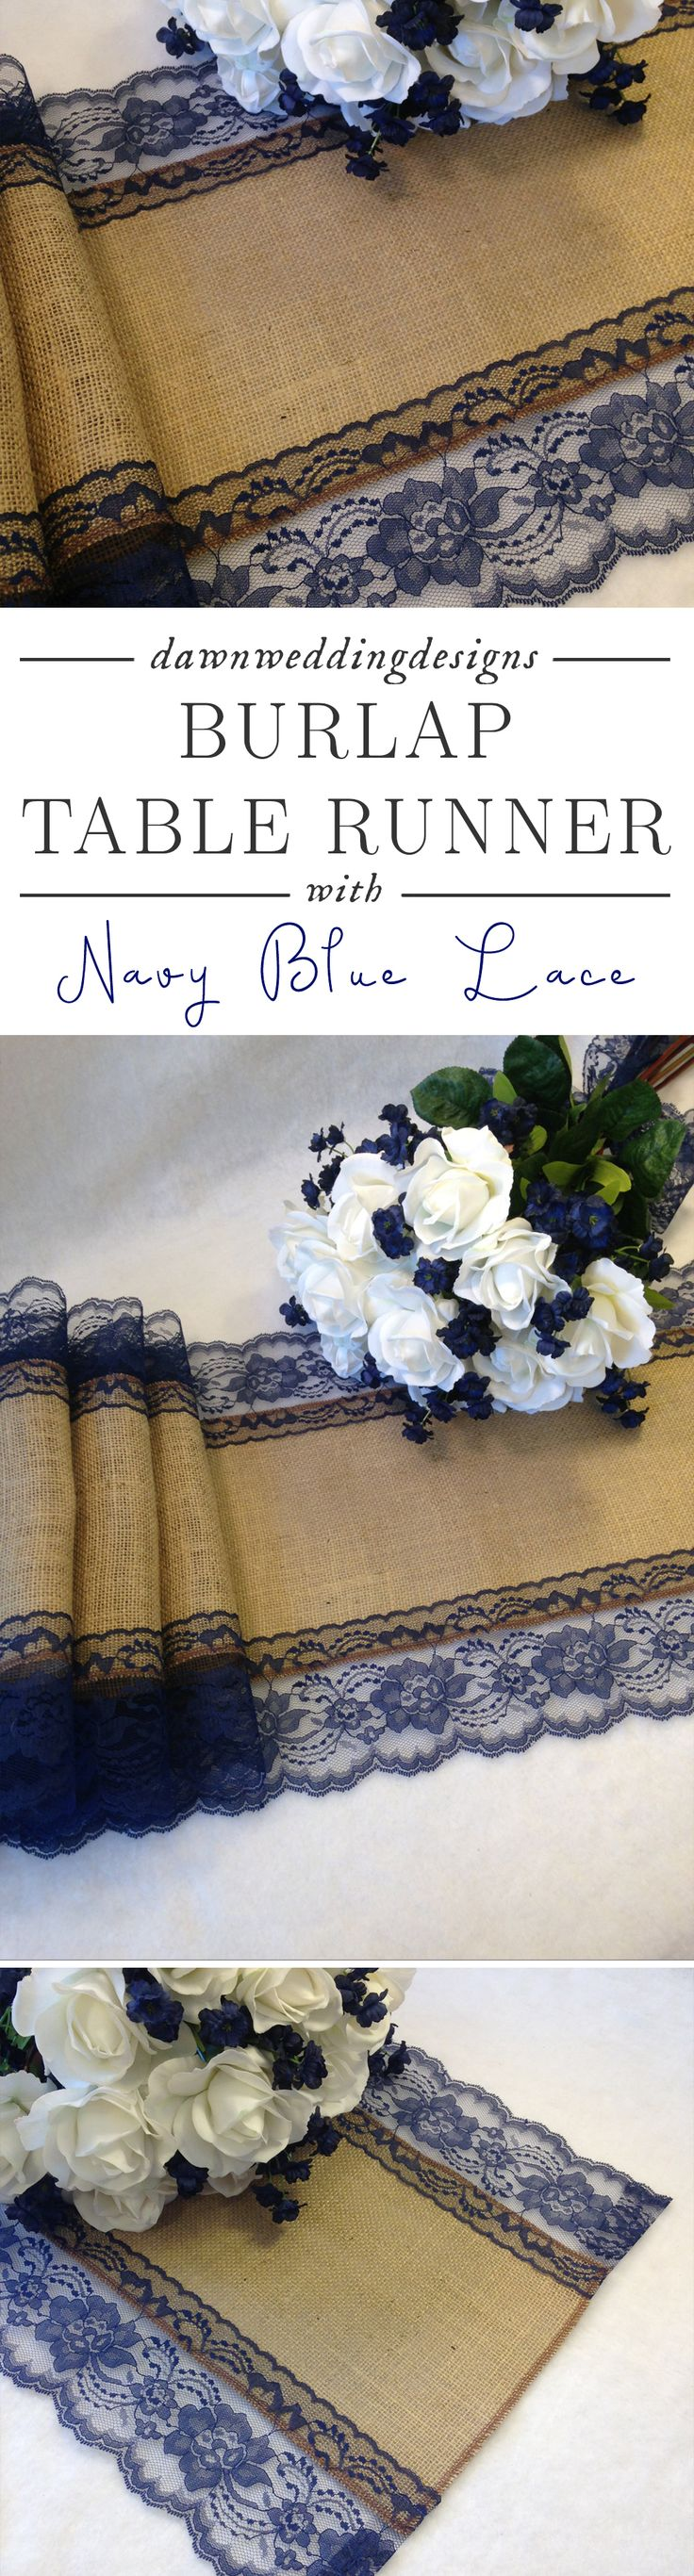 80 quot x72 quot shabby rustic chic burlap shower curtain ivory lace ruffles - Navy Blue Wedding D Cor Burlap Table Runner Navy Dark Blue Lace Wedding Table